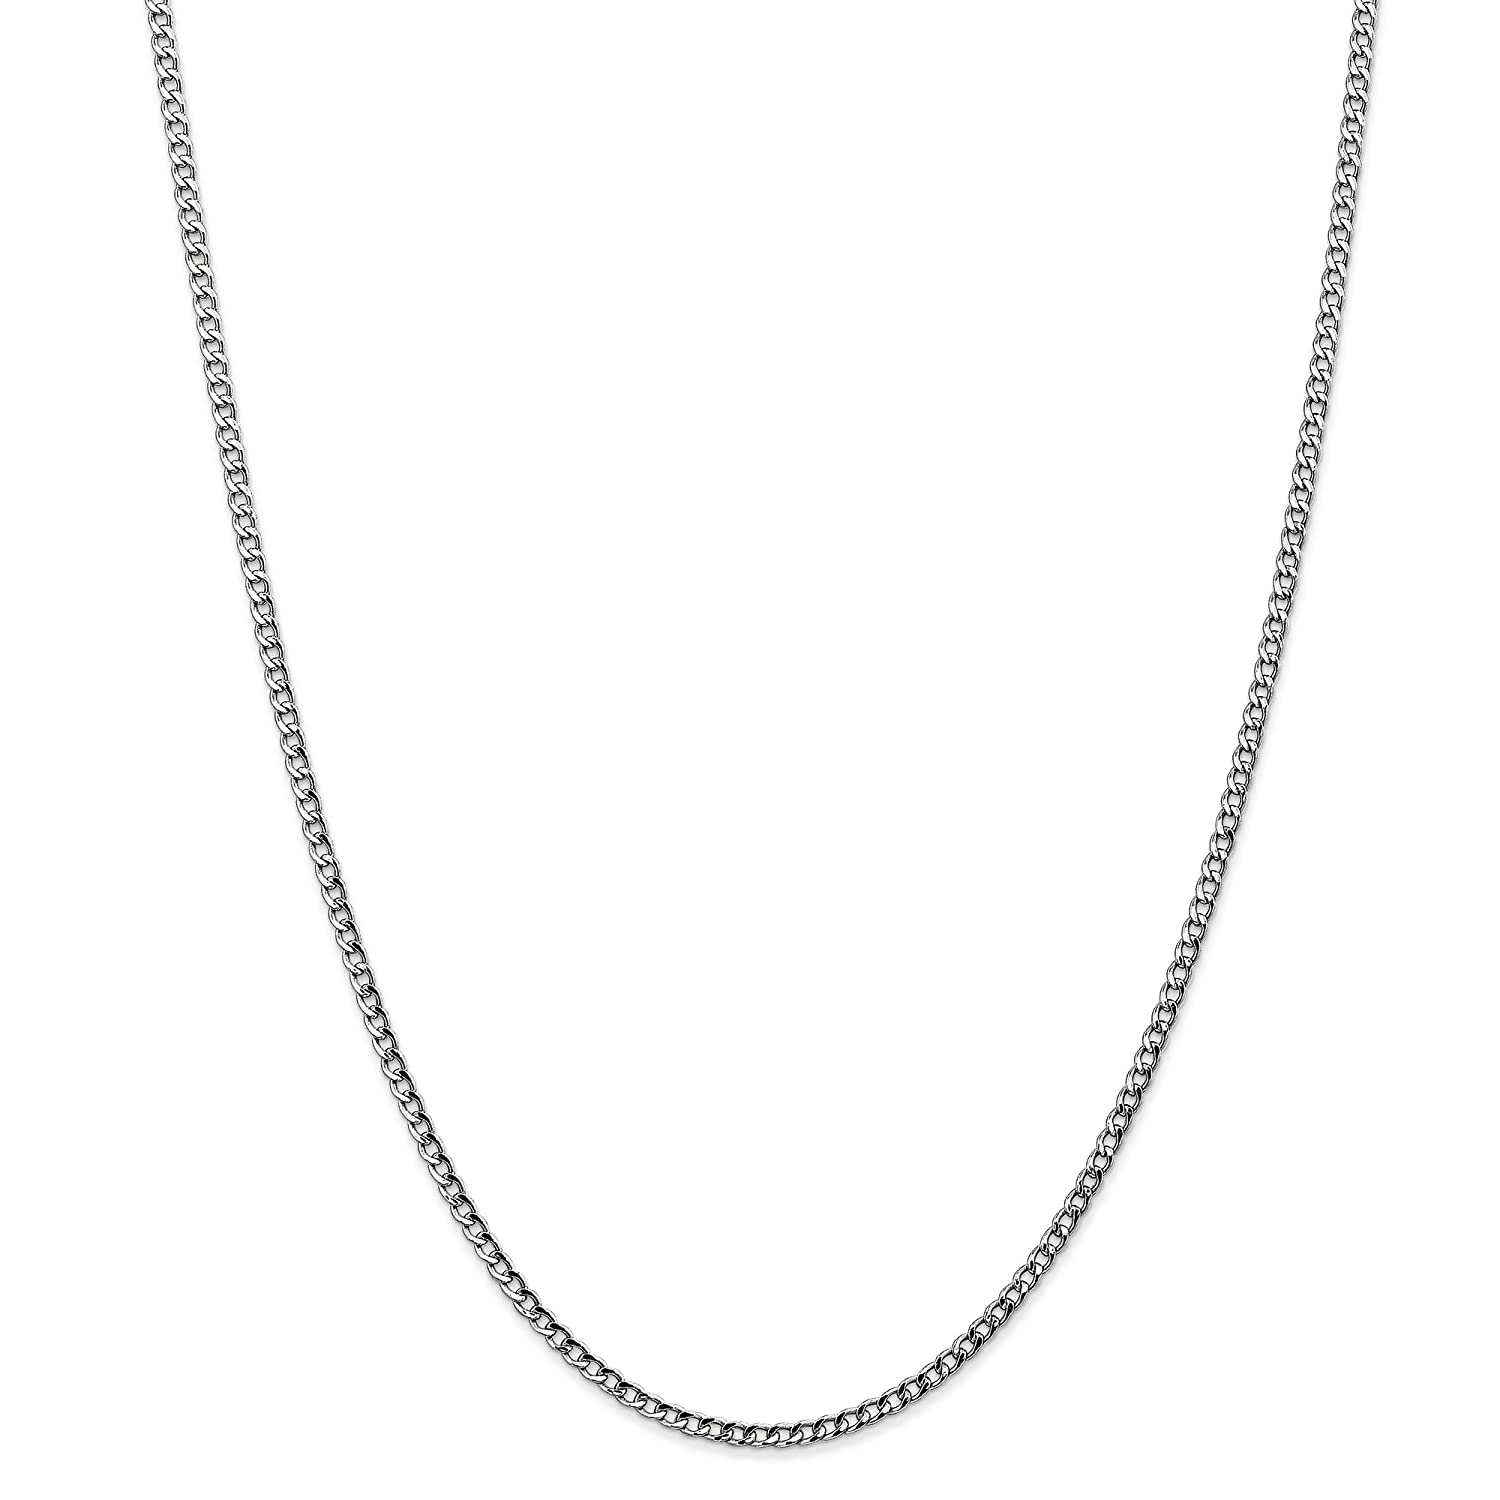 14k White Gold 18in 2.50mm Lightweight Curb Link Necklace Chain